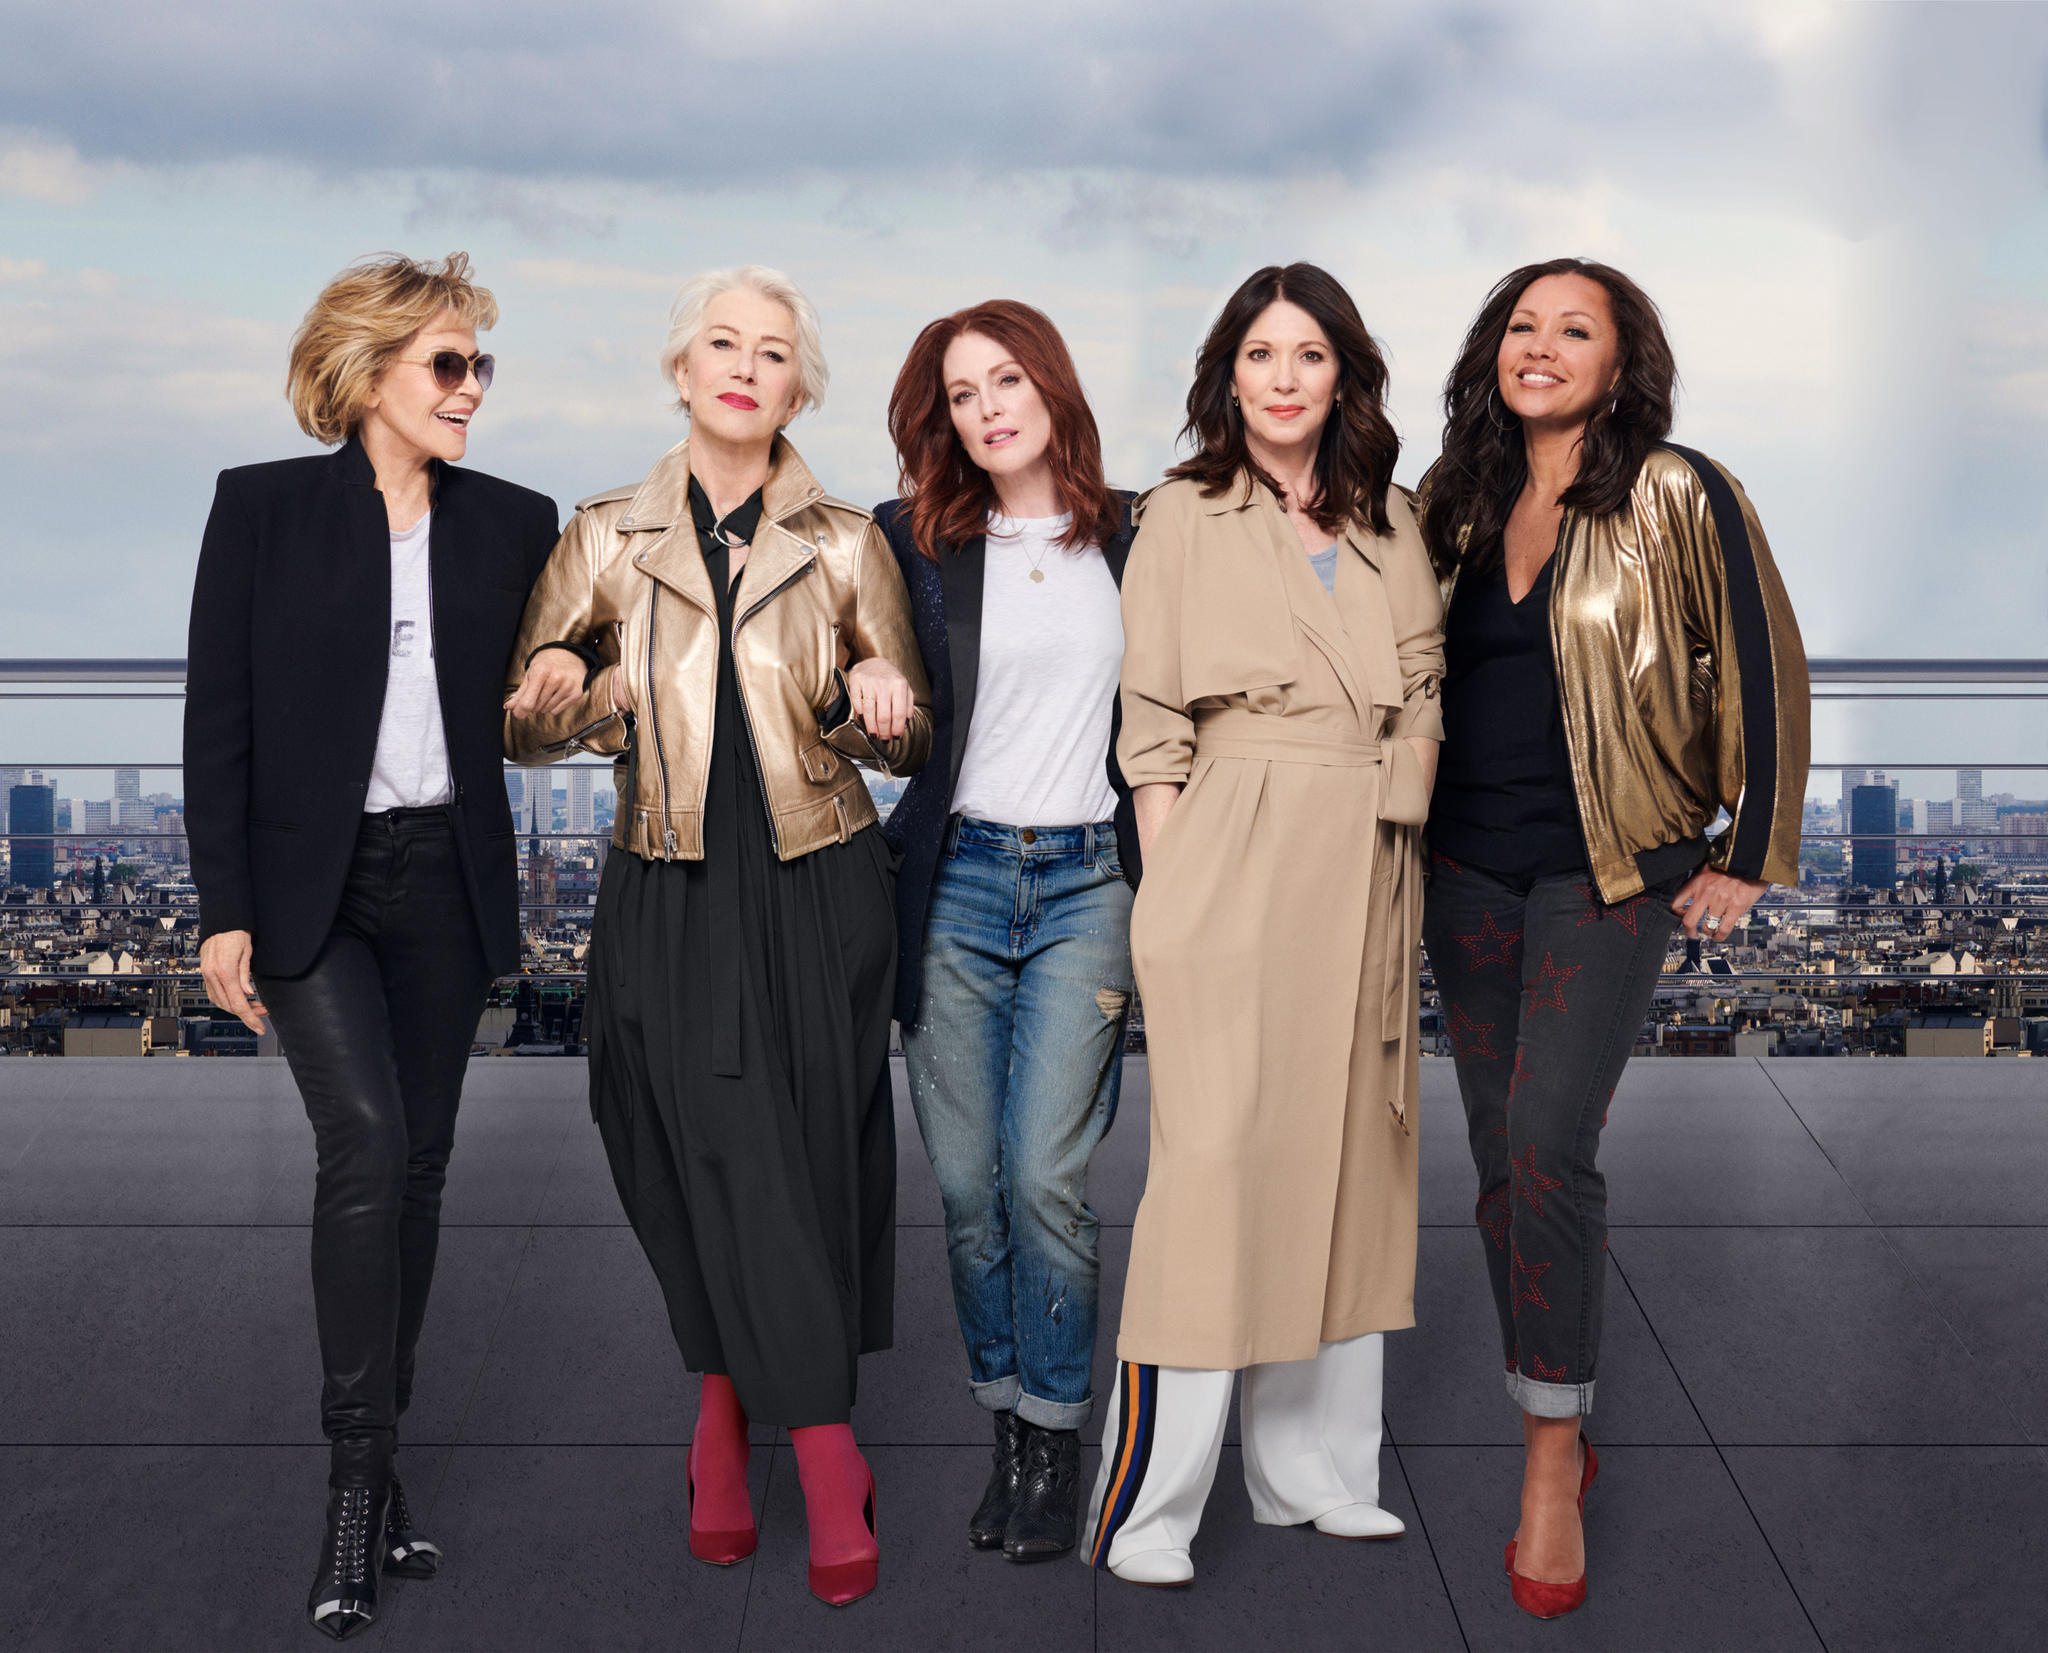 (v.l) Jane Fonda, Helen Mirren, Julianne Moore, Iris Berben und Vanessa Williams